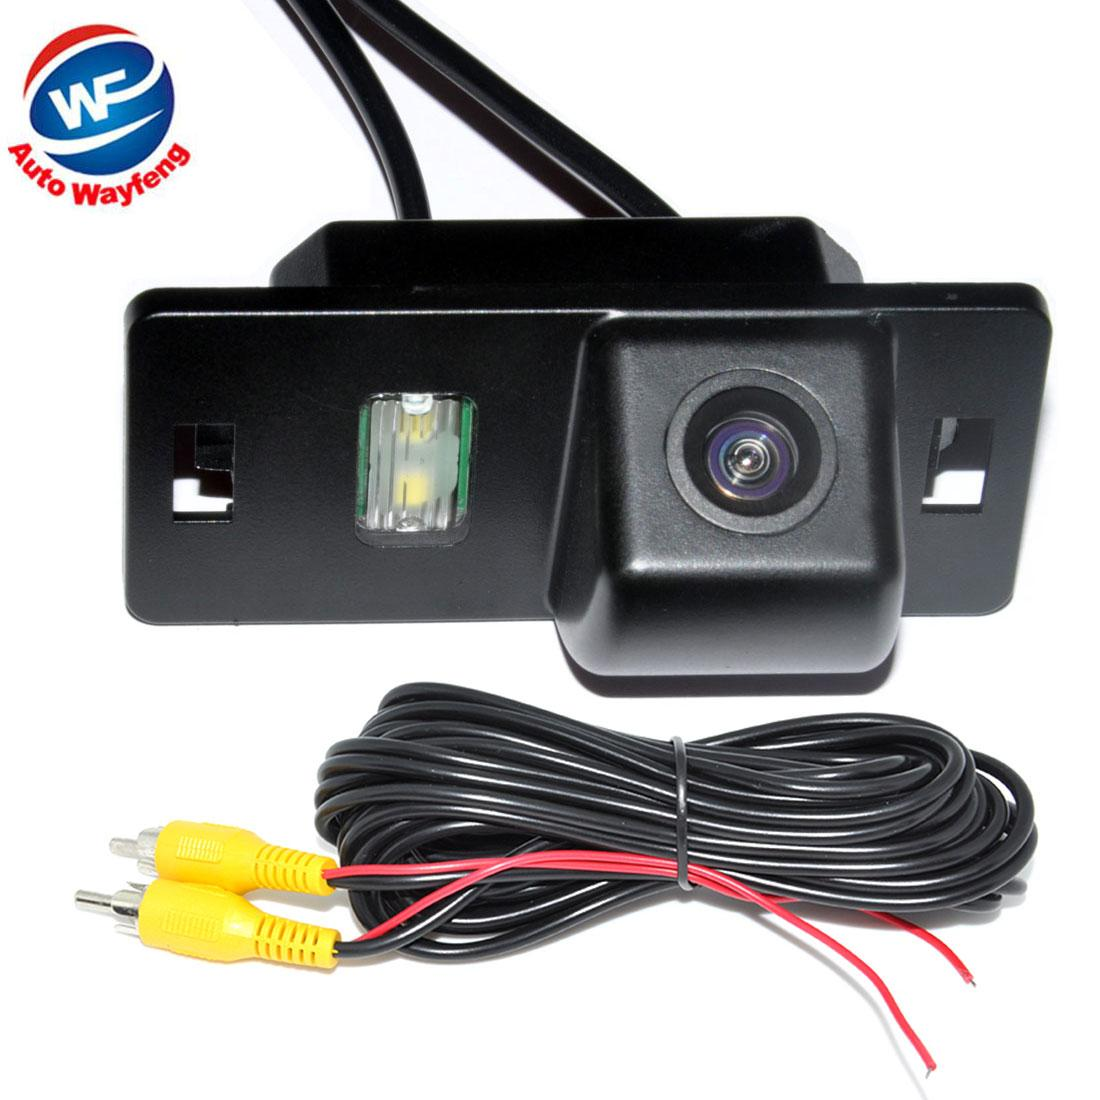 rearview backup Car Vehicle Rearview For udi A3/A4(6/B7/B8) /Q5/Q7/A8/S8 Backup Review Rear View Parking Reversing Camera